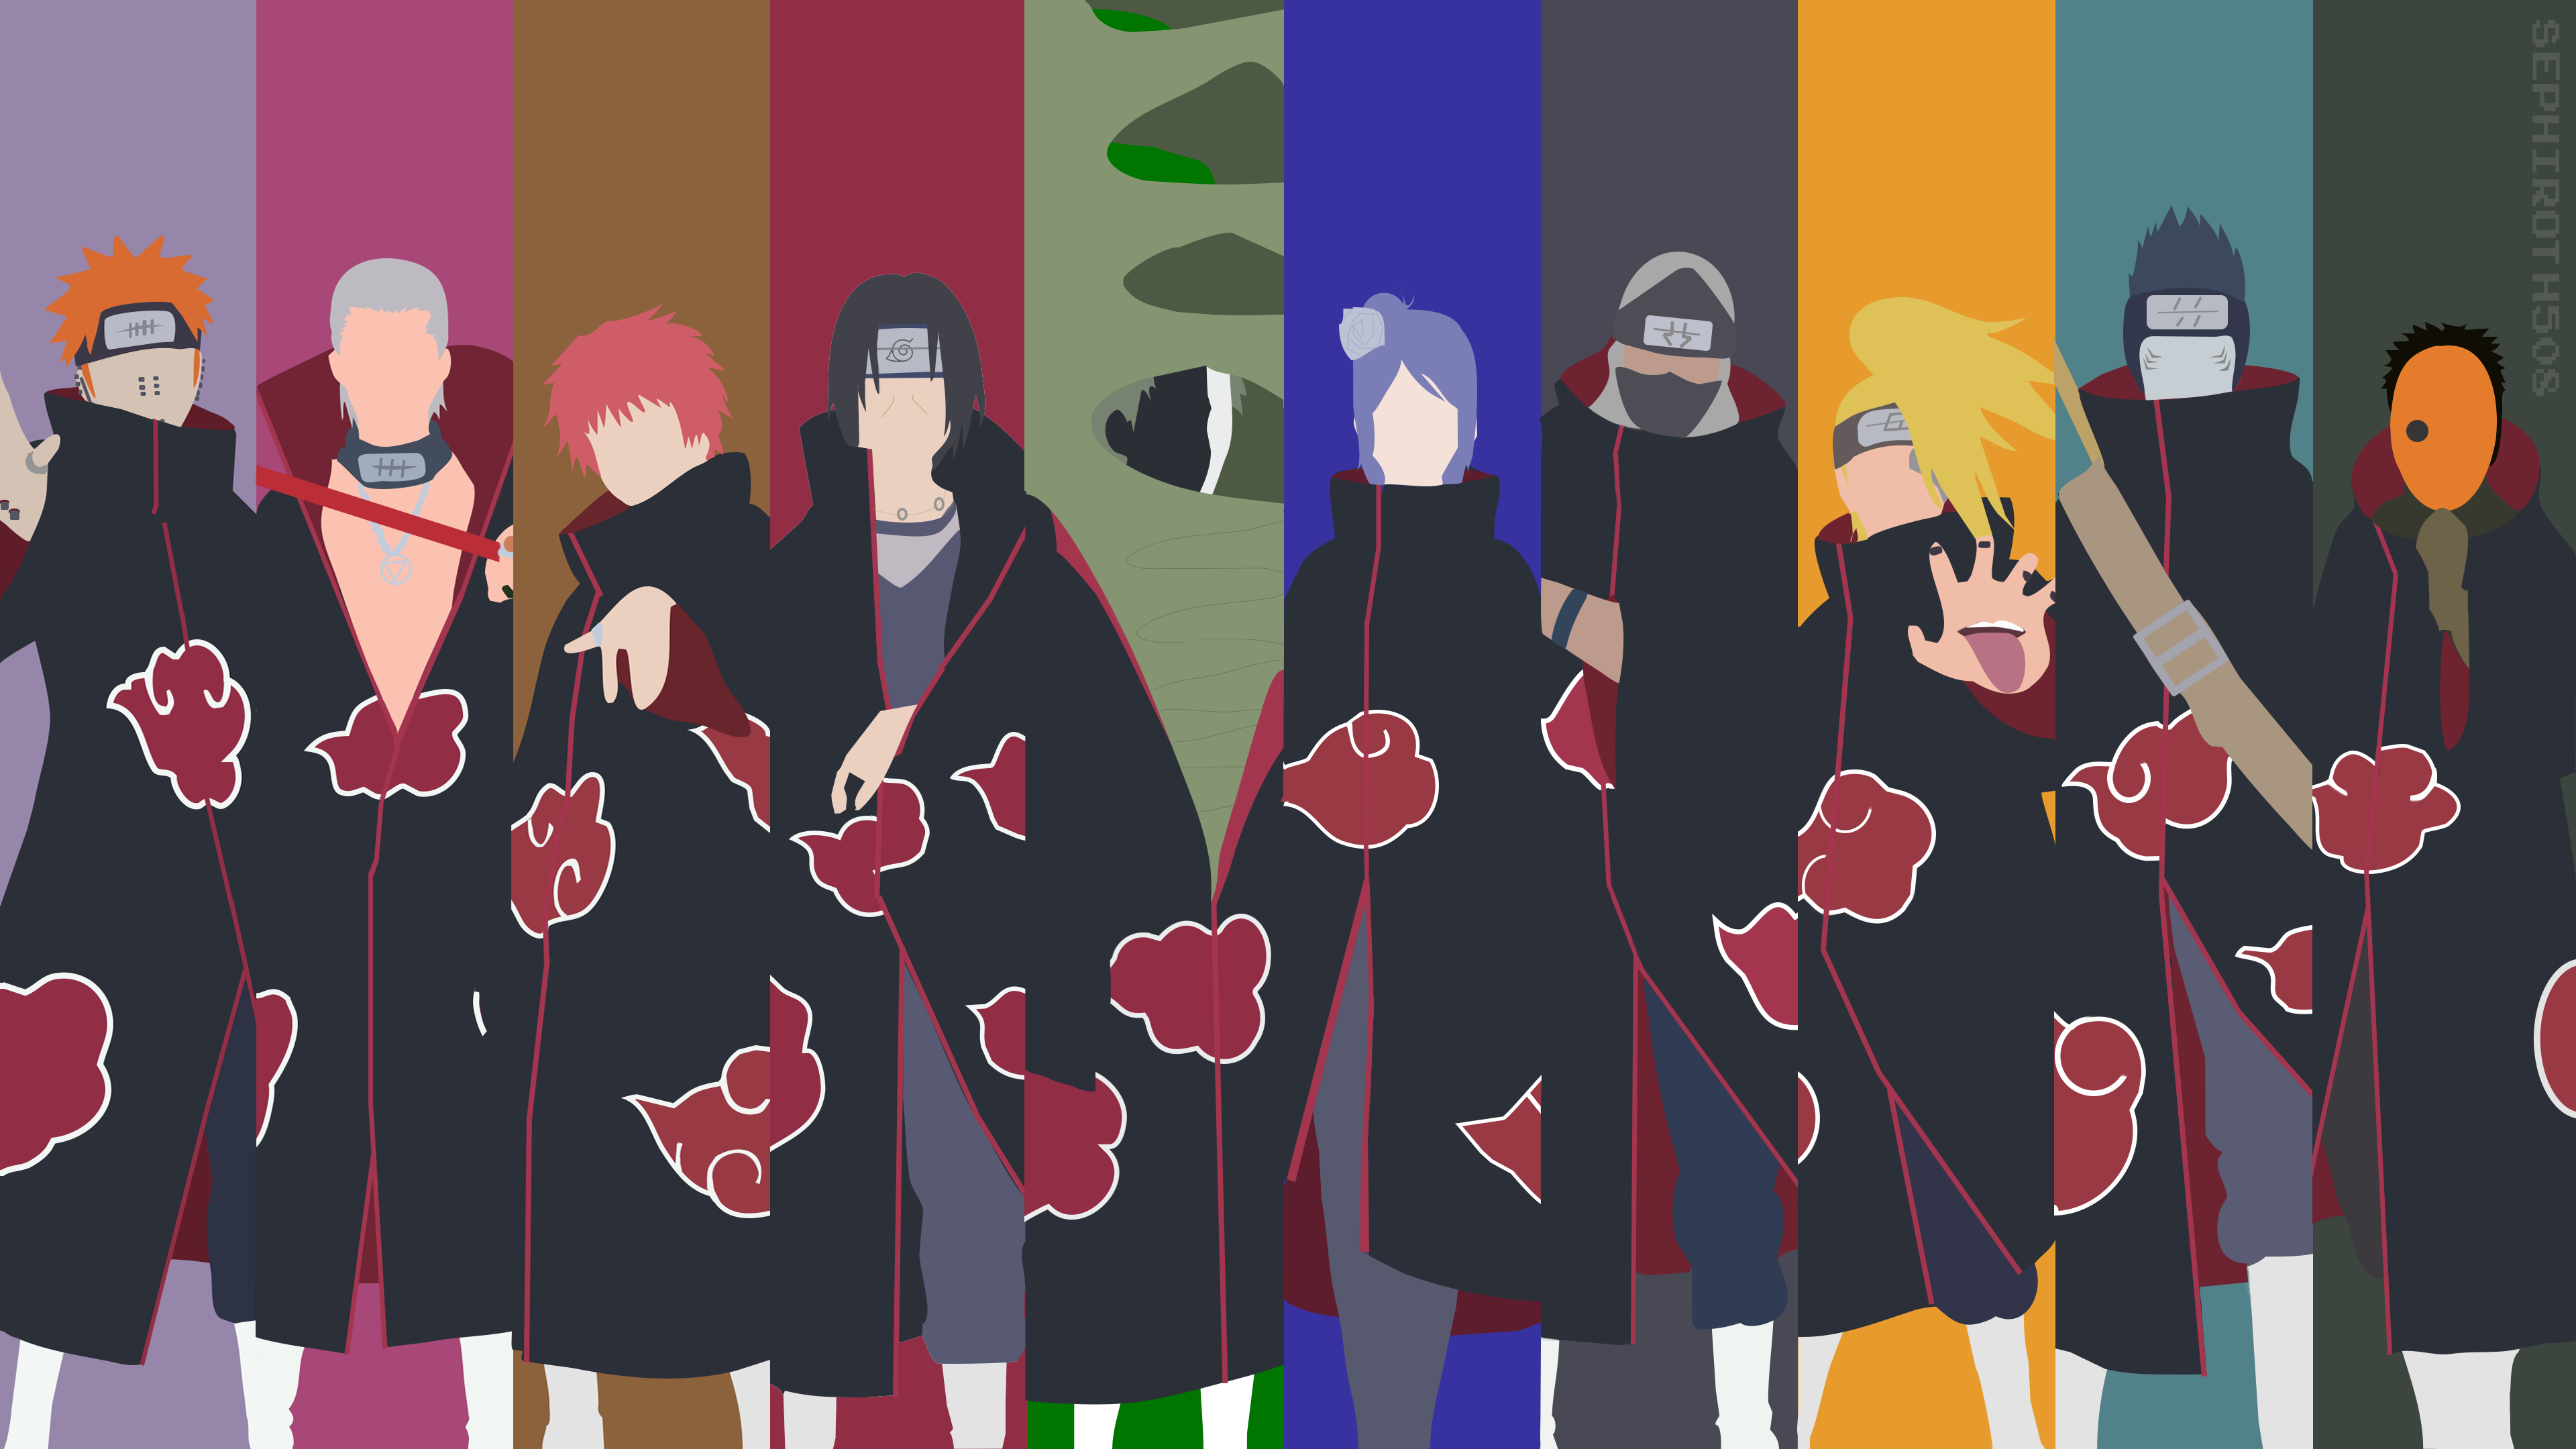 Pin de onlymyflower em Naruto Deidara wallpaper